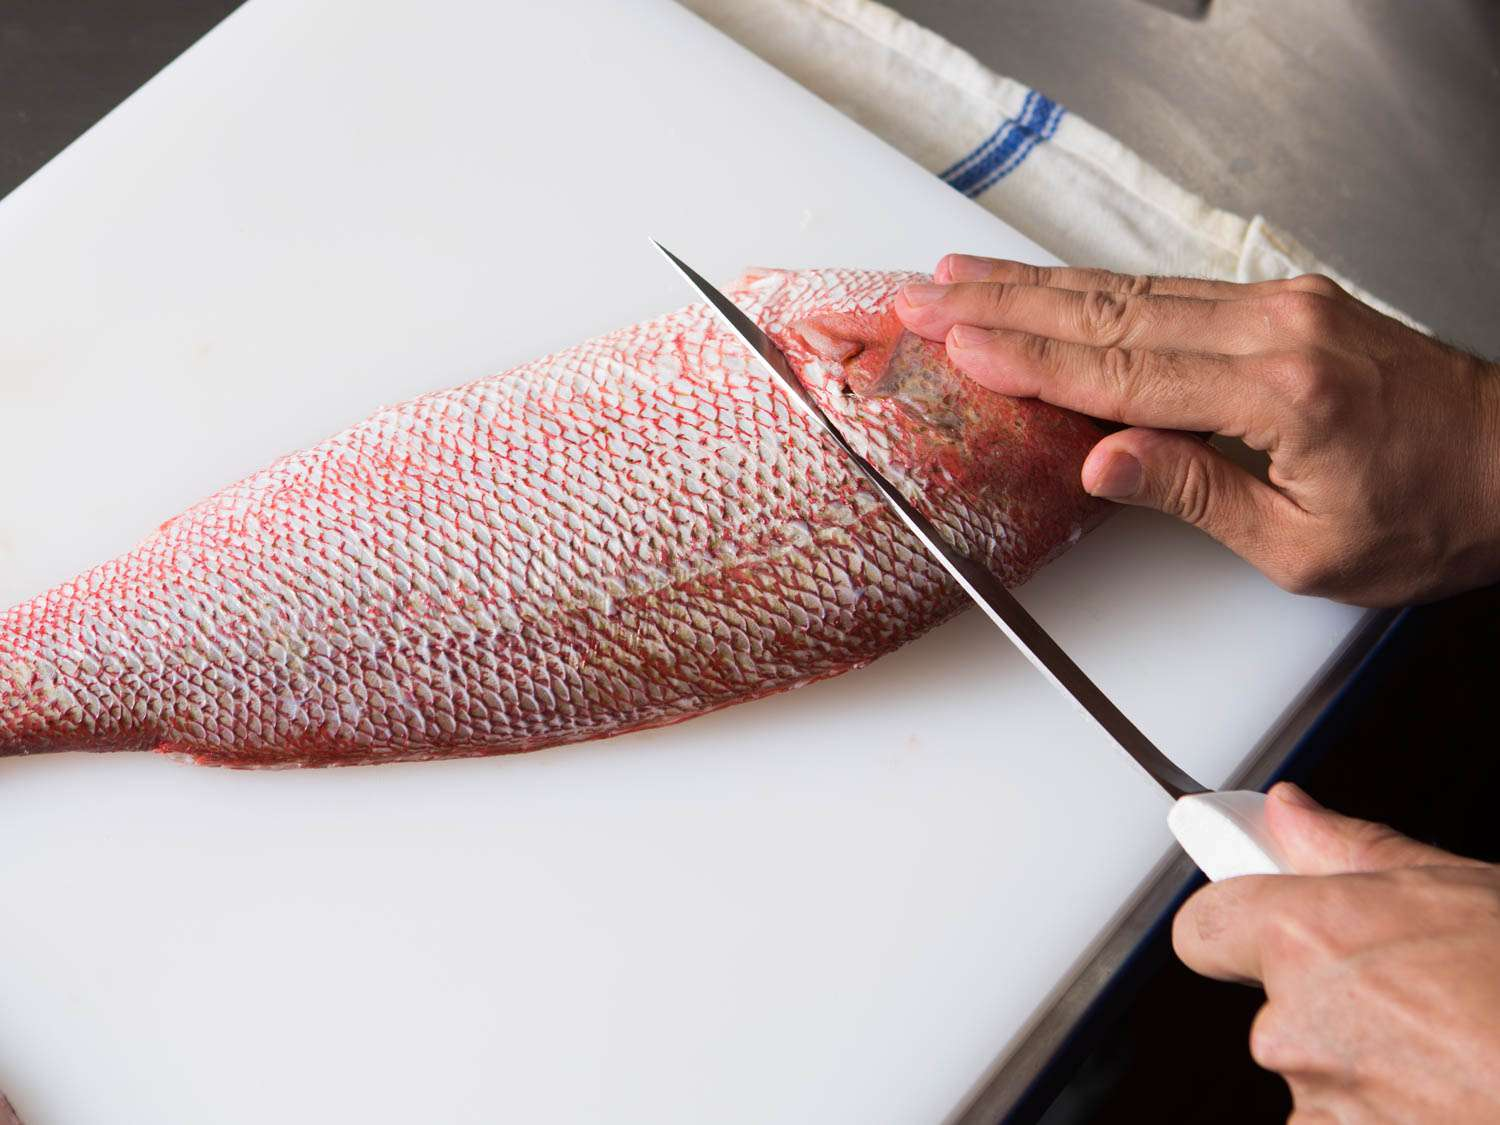 20150922-how-to-fillet-fish-12.jpg